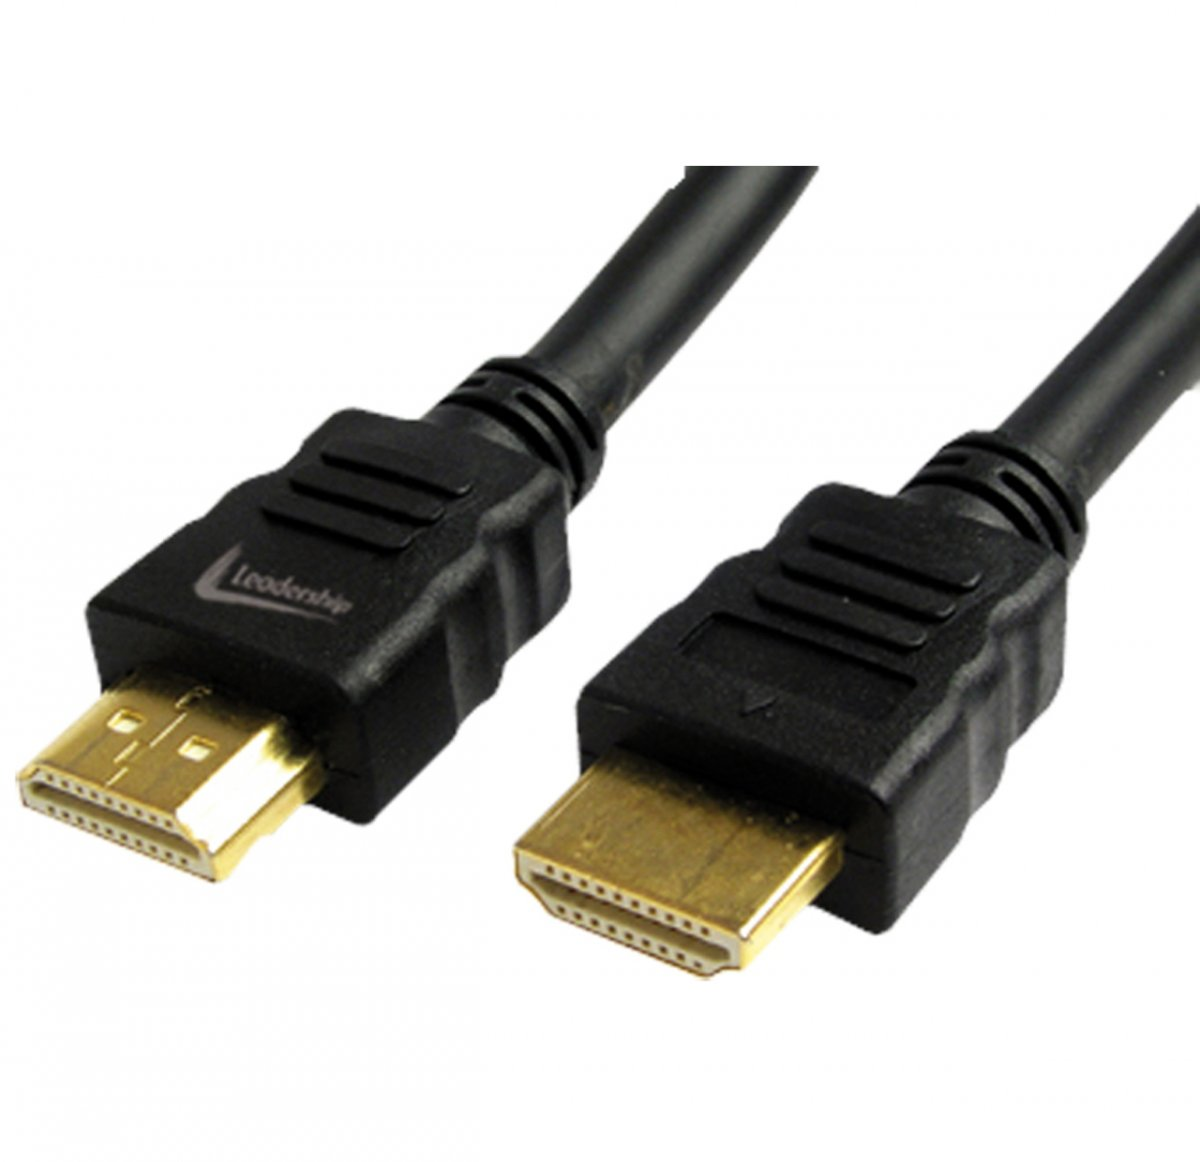 Cabo Hdmi Gold 1.4 - 4K HDR 3D 19P 3.0M LeaderShip (Blister)